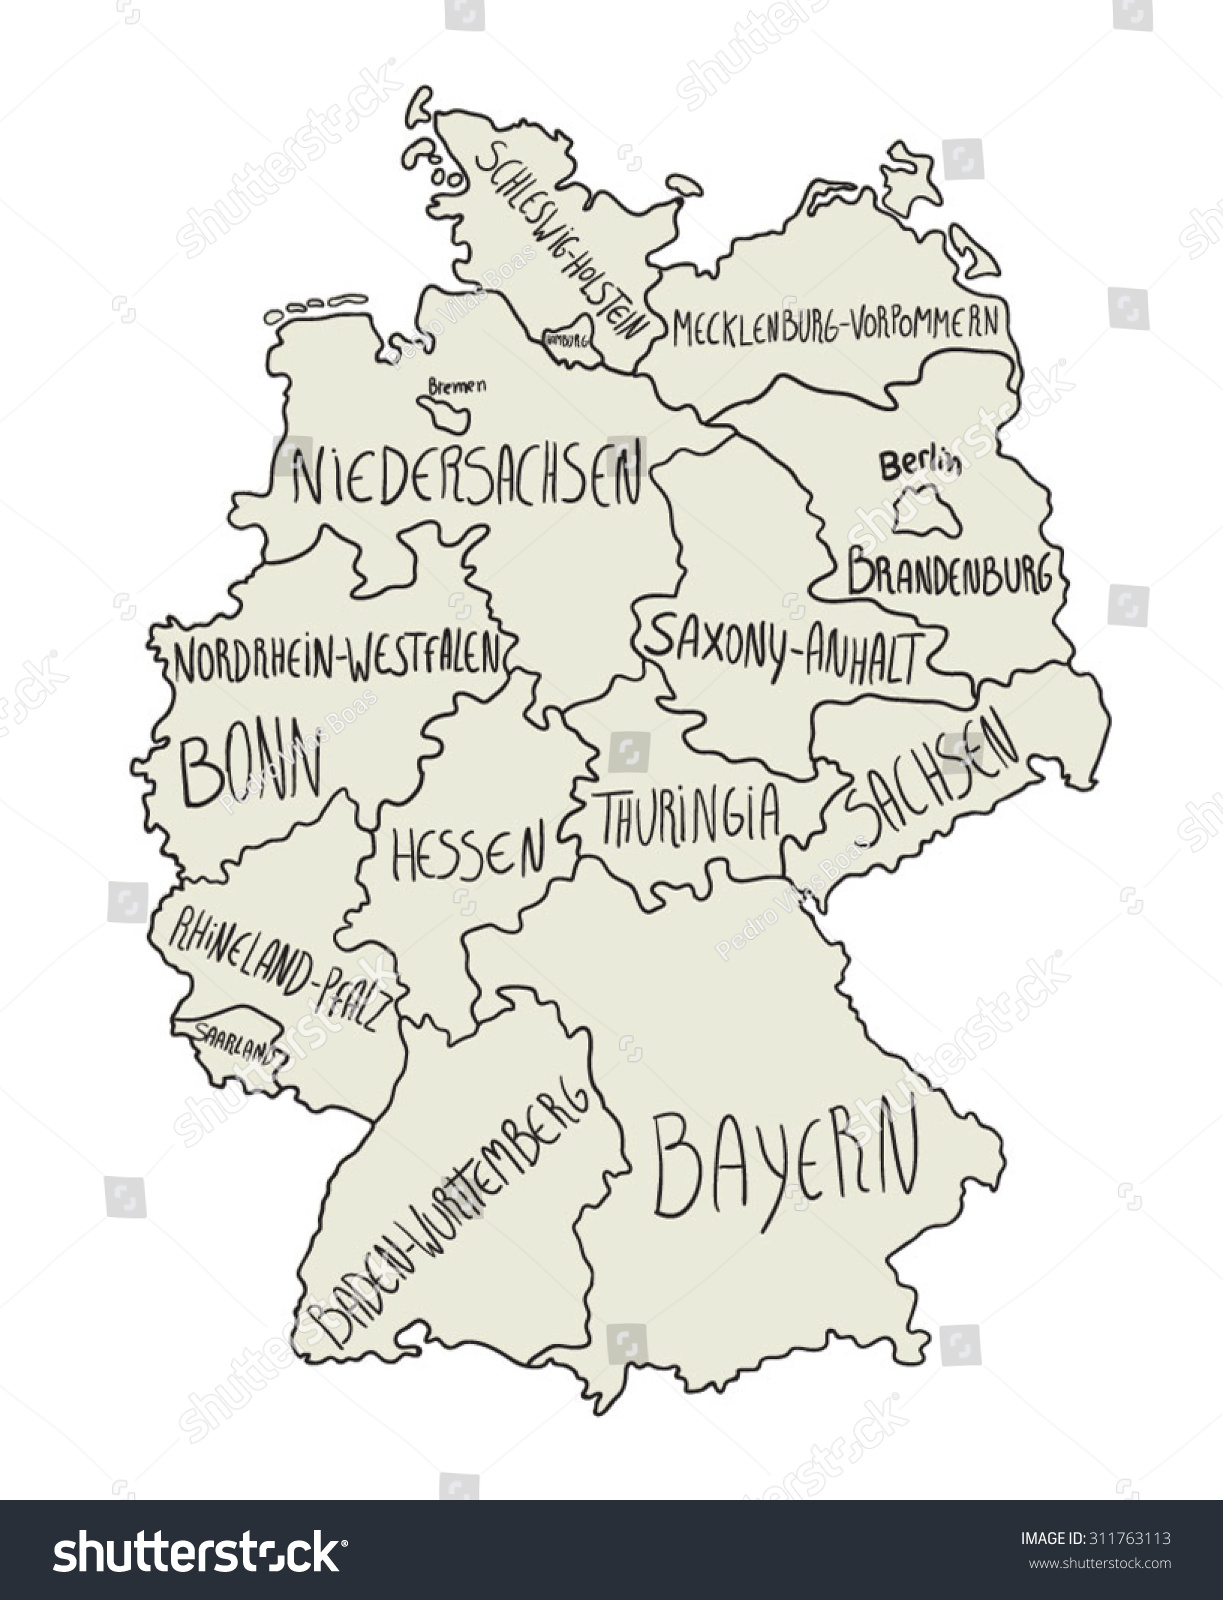 Cartoon Map Germany Stock Vector Shutterstock - Germany map cartoon